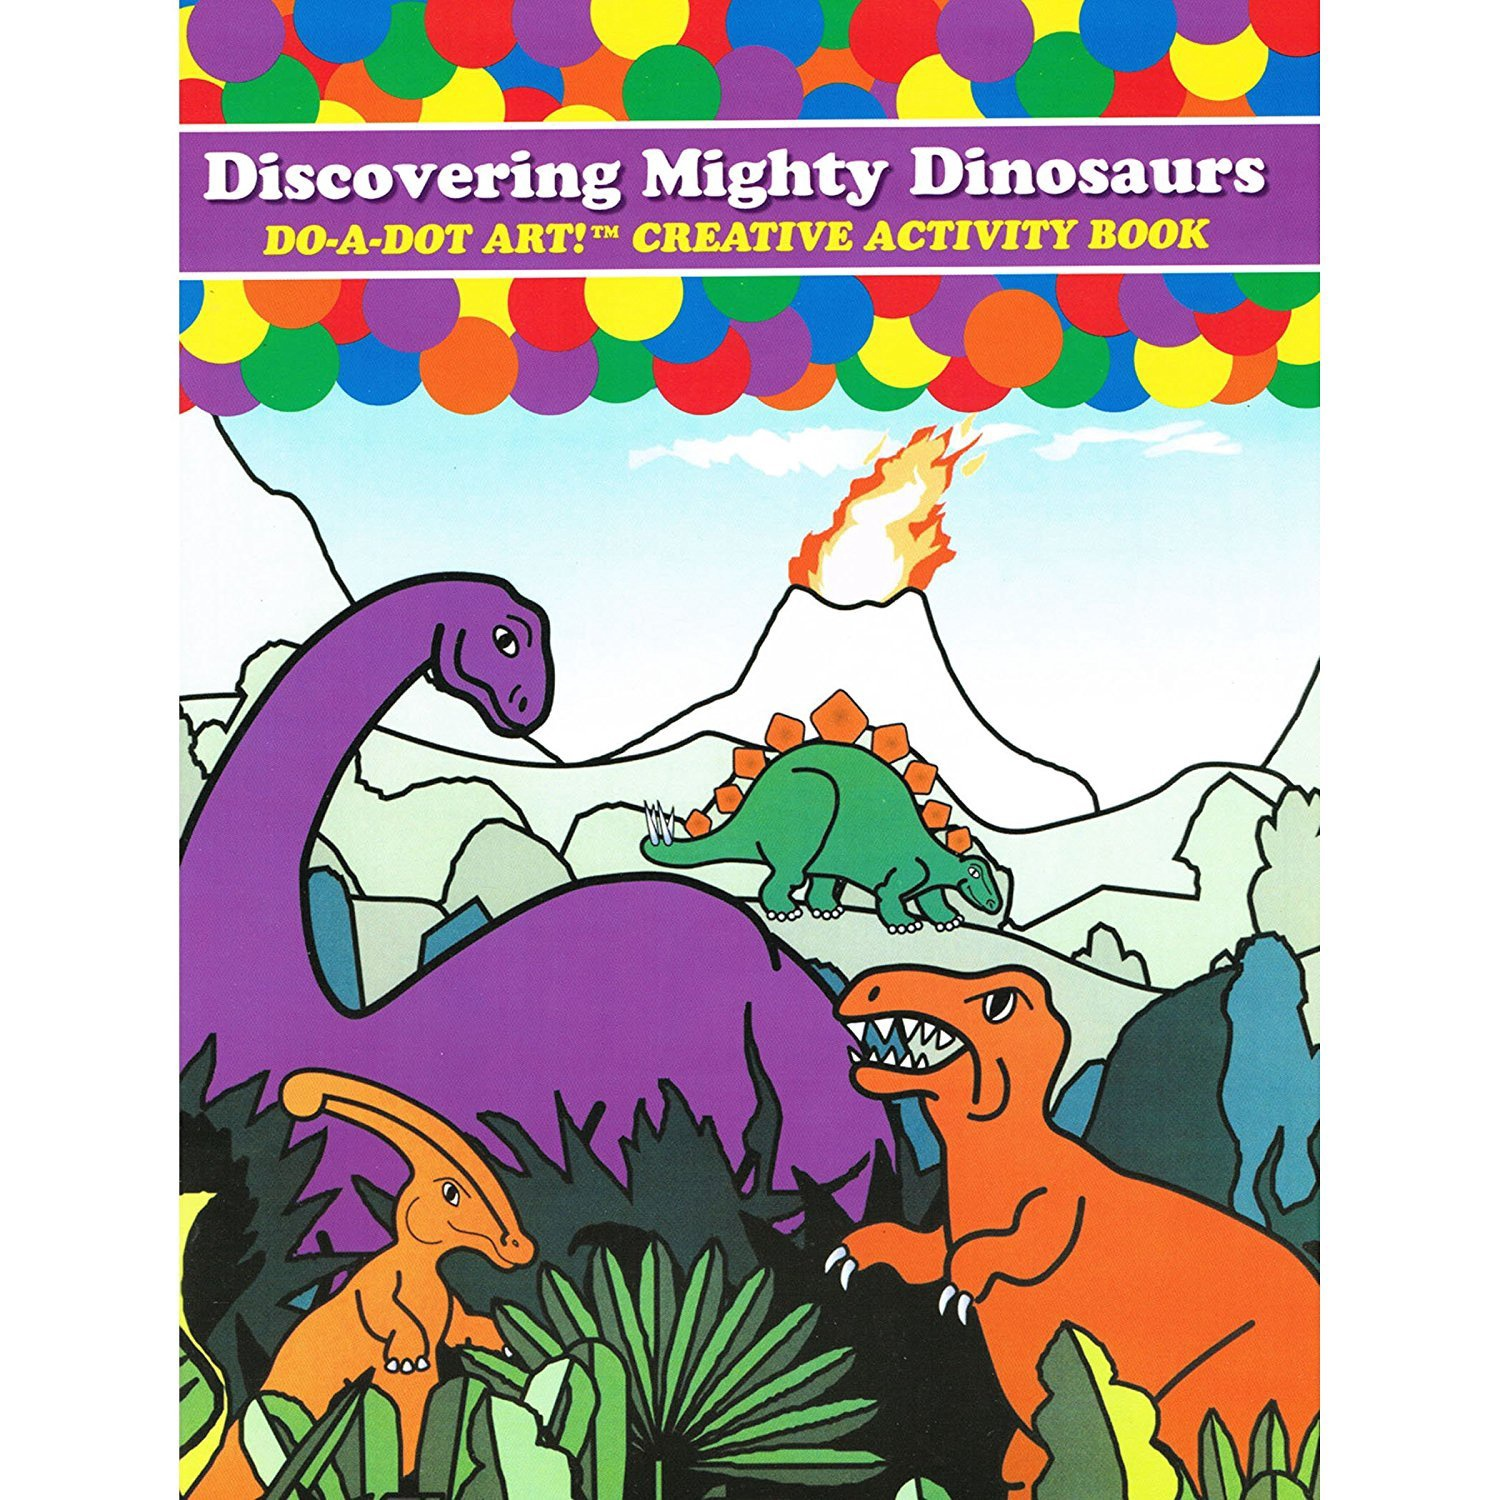 DISCOVERING MIGHTY DINO